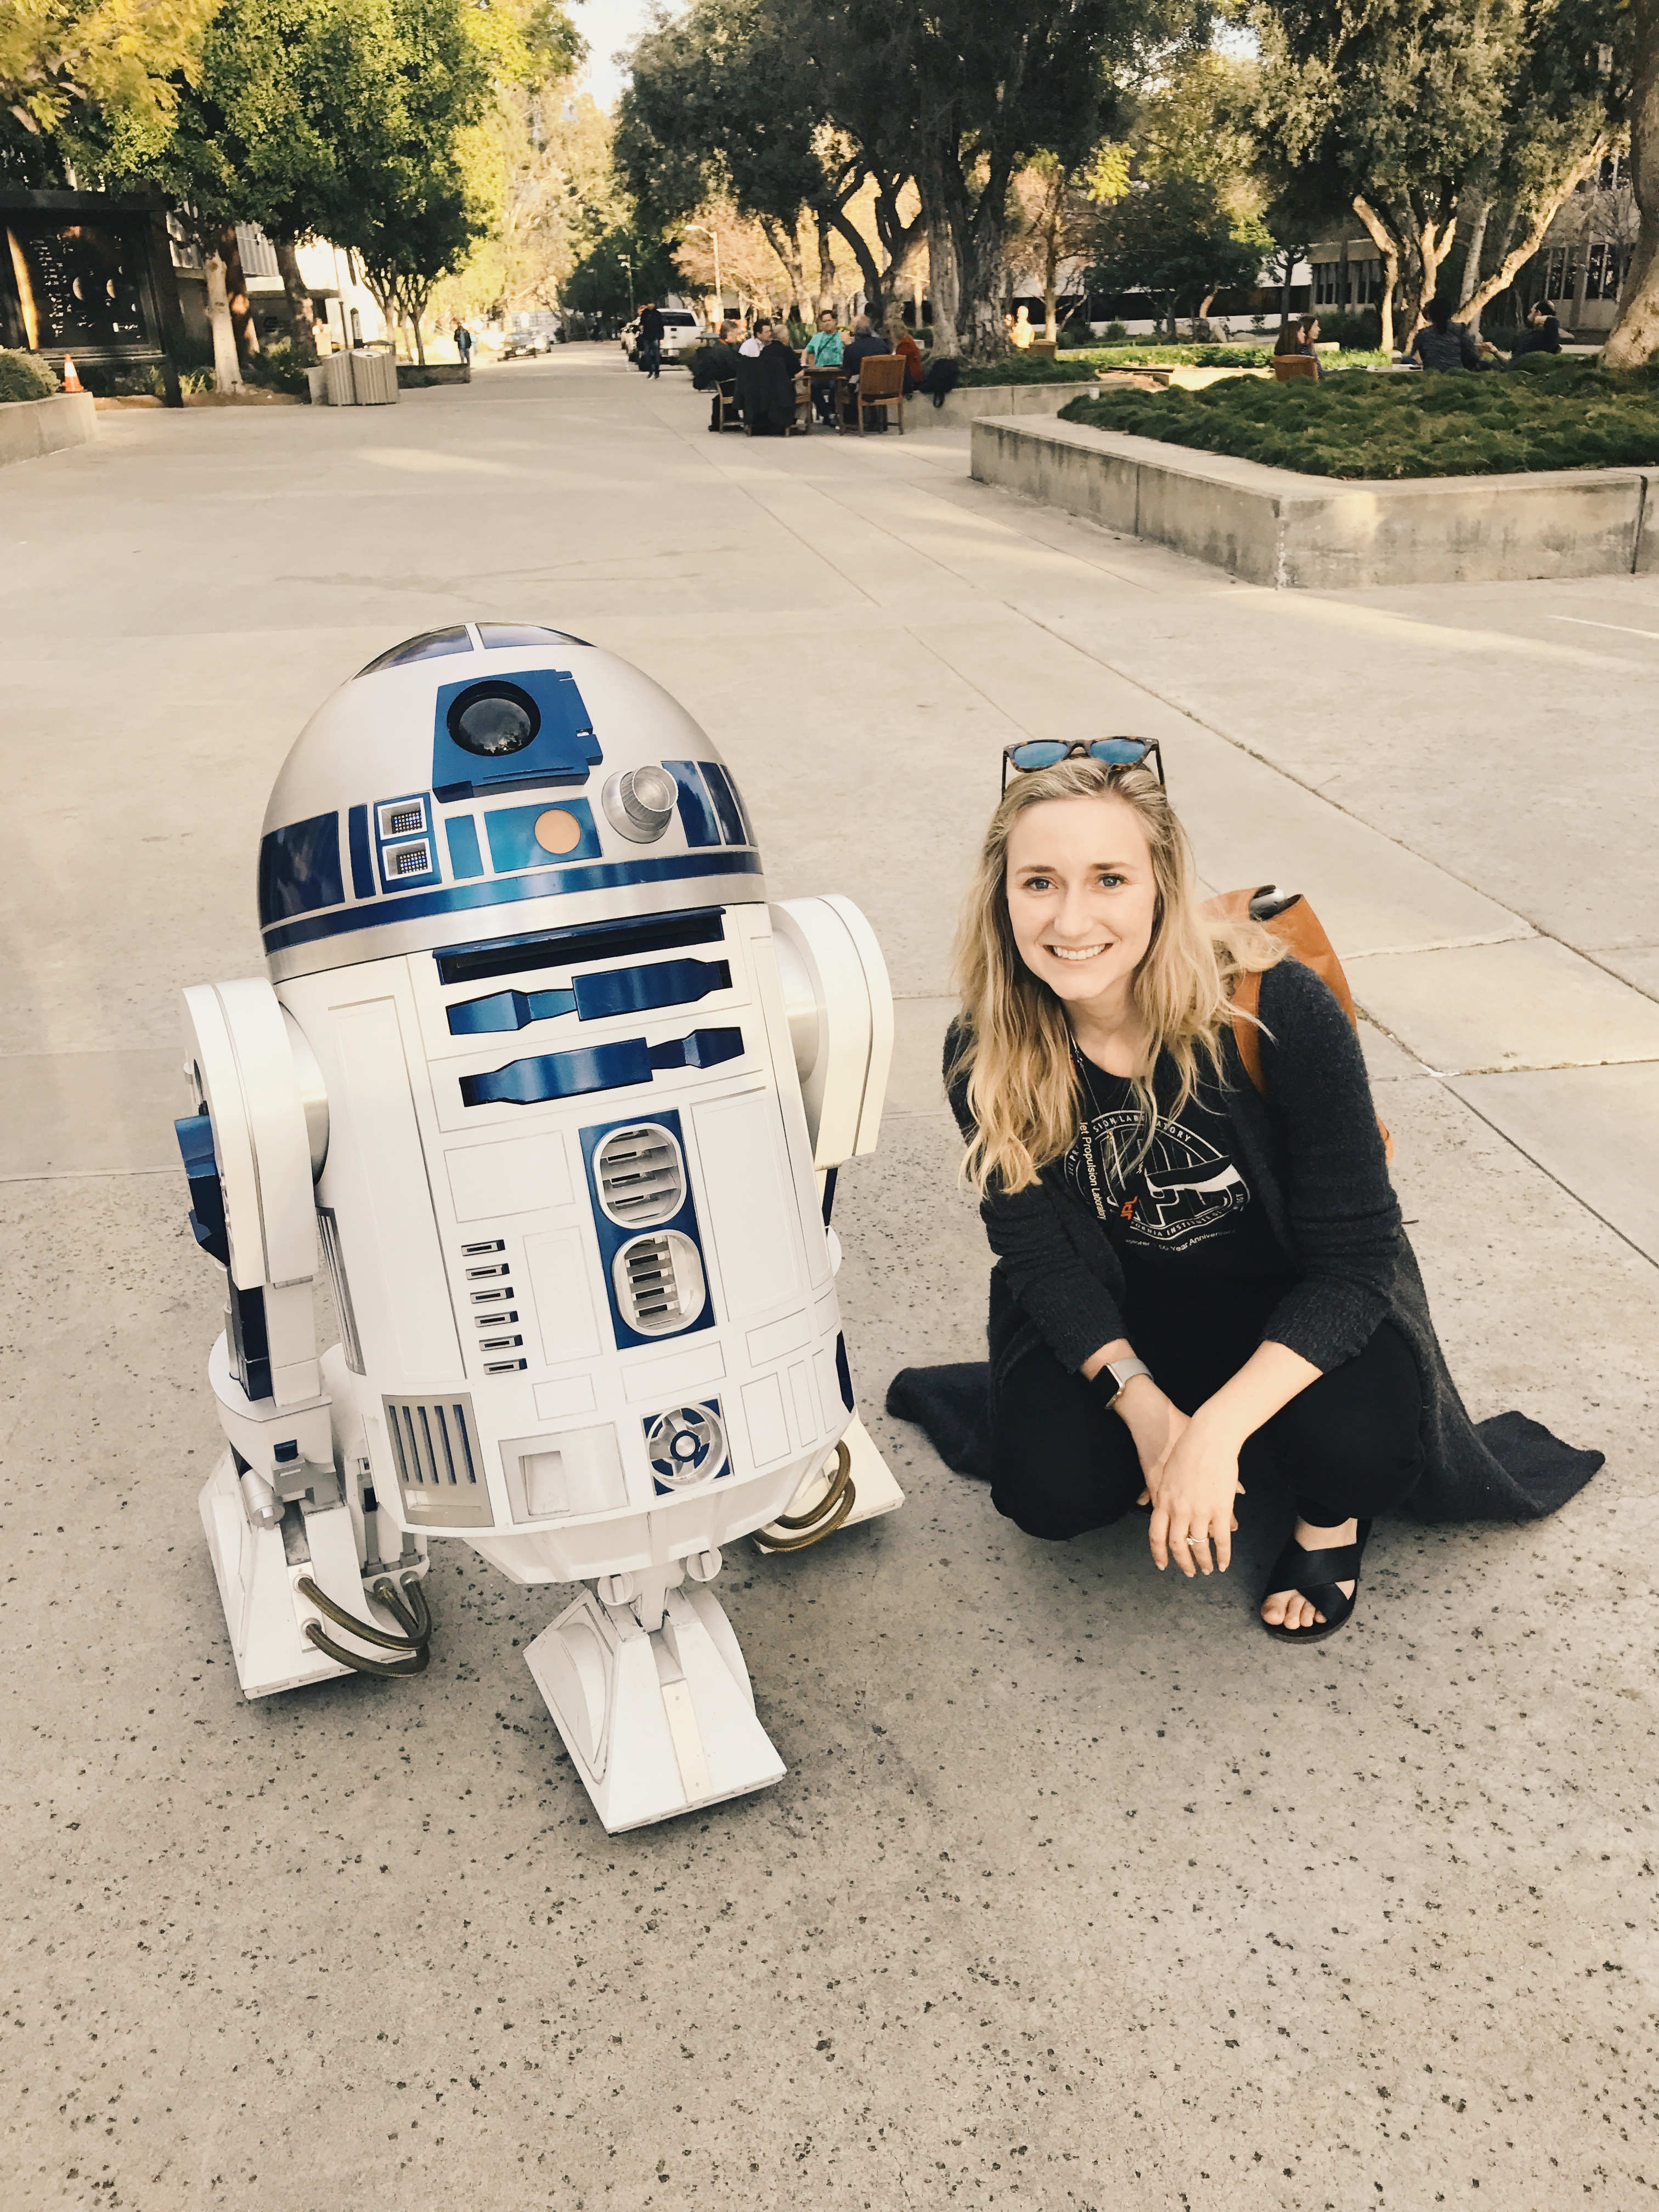 Hallie Abarca next to R2D2